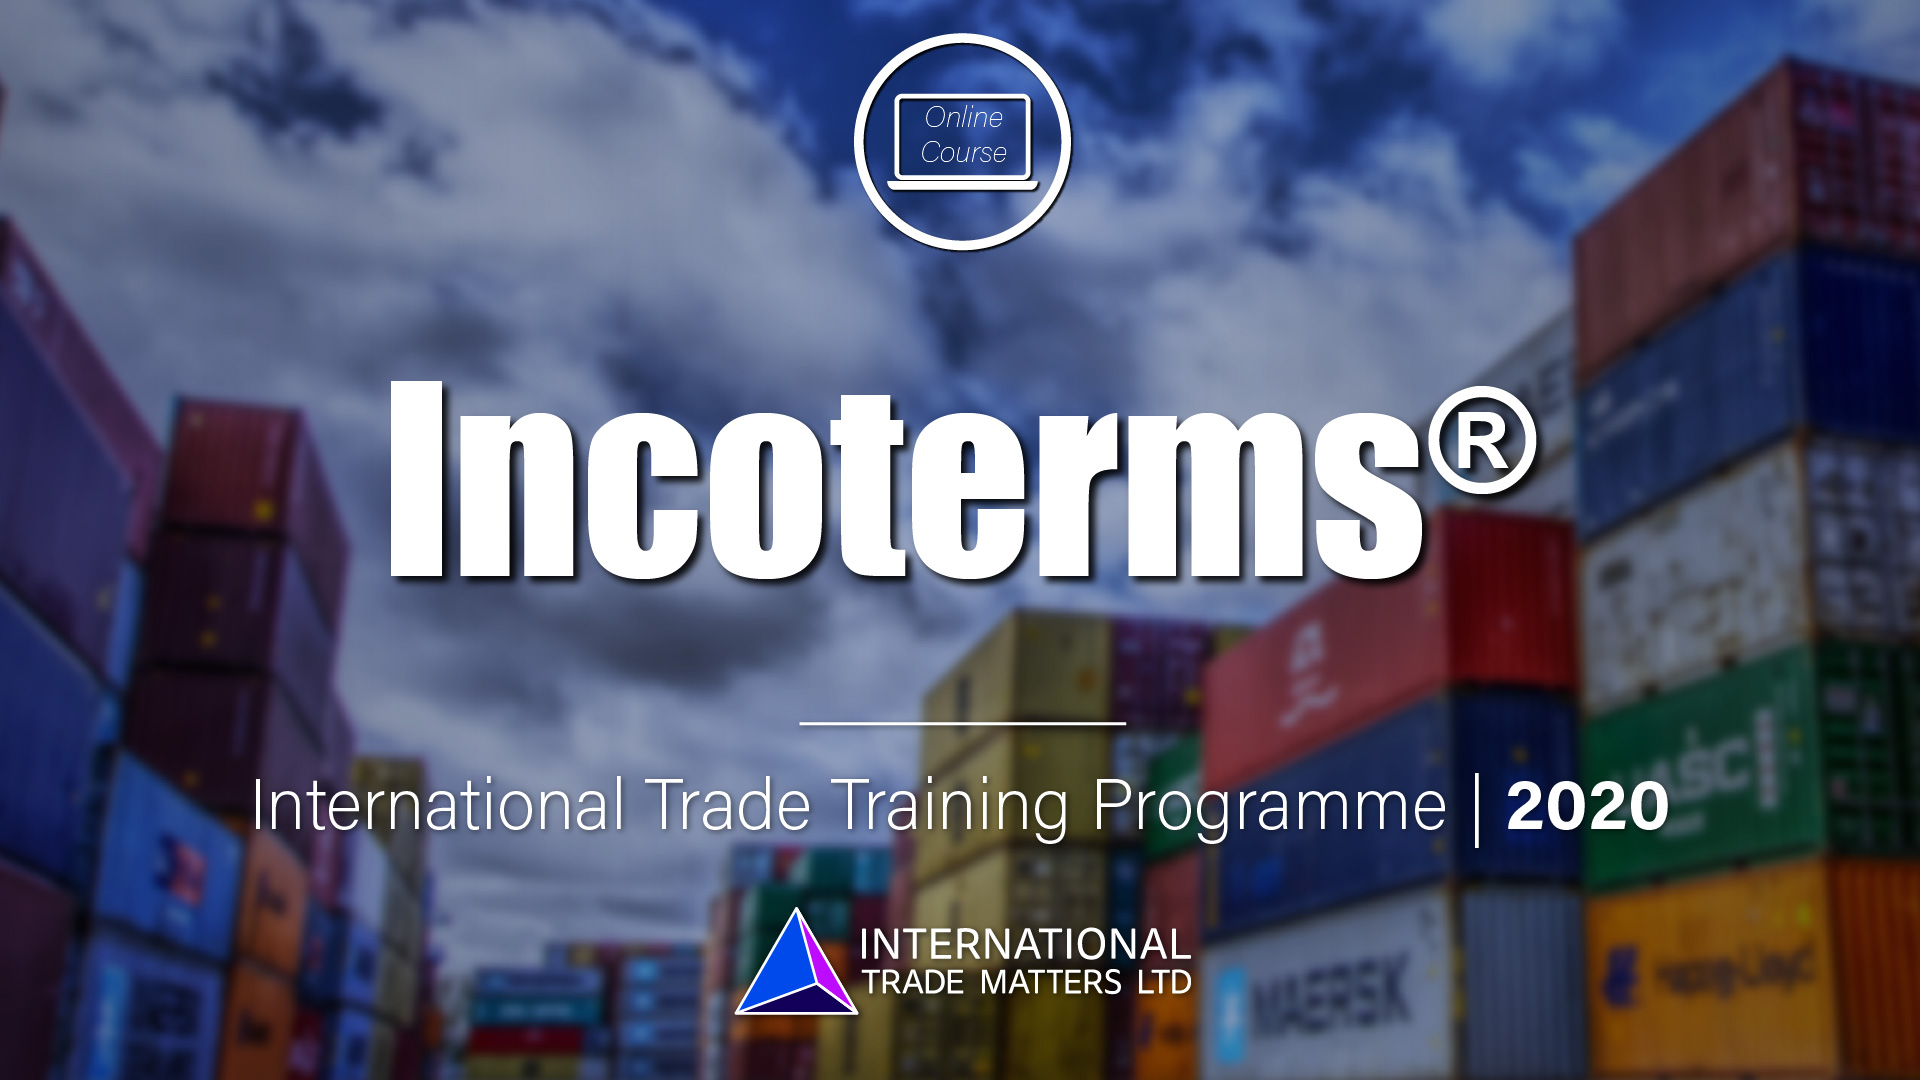 Incoterms® - An Online Course